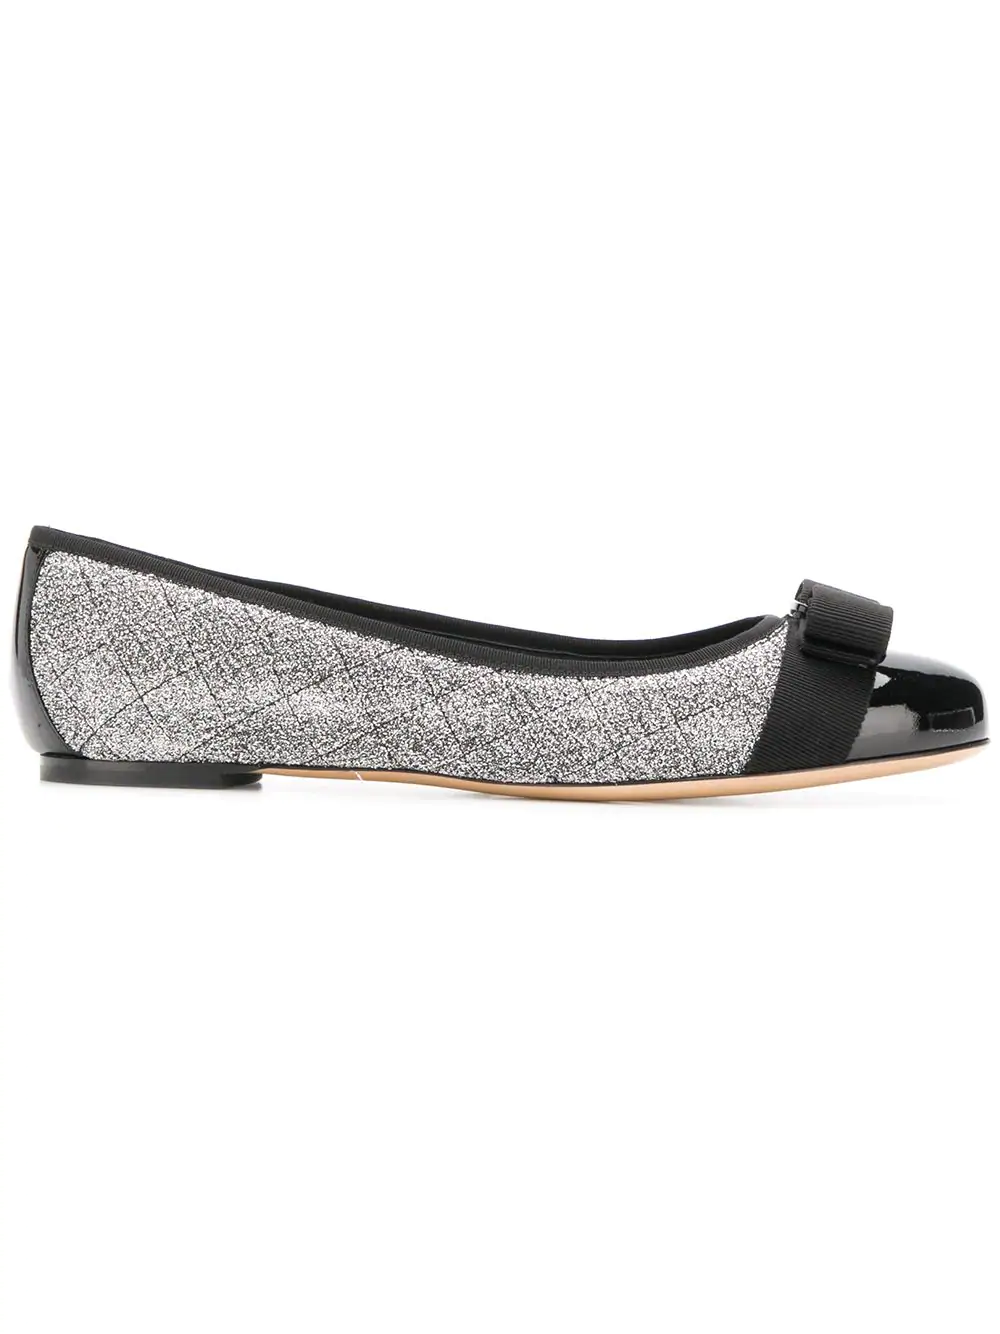 2146d766d5 Varina Quilted Silver Fabric Black Patent Ballerinas